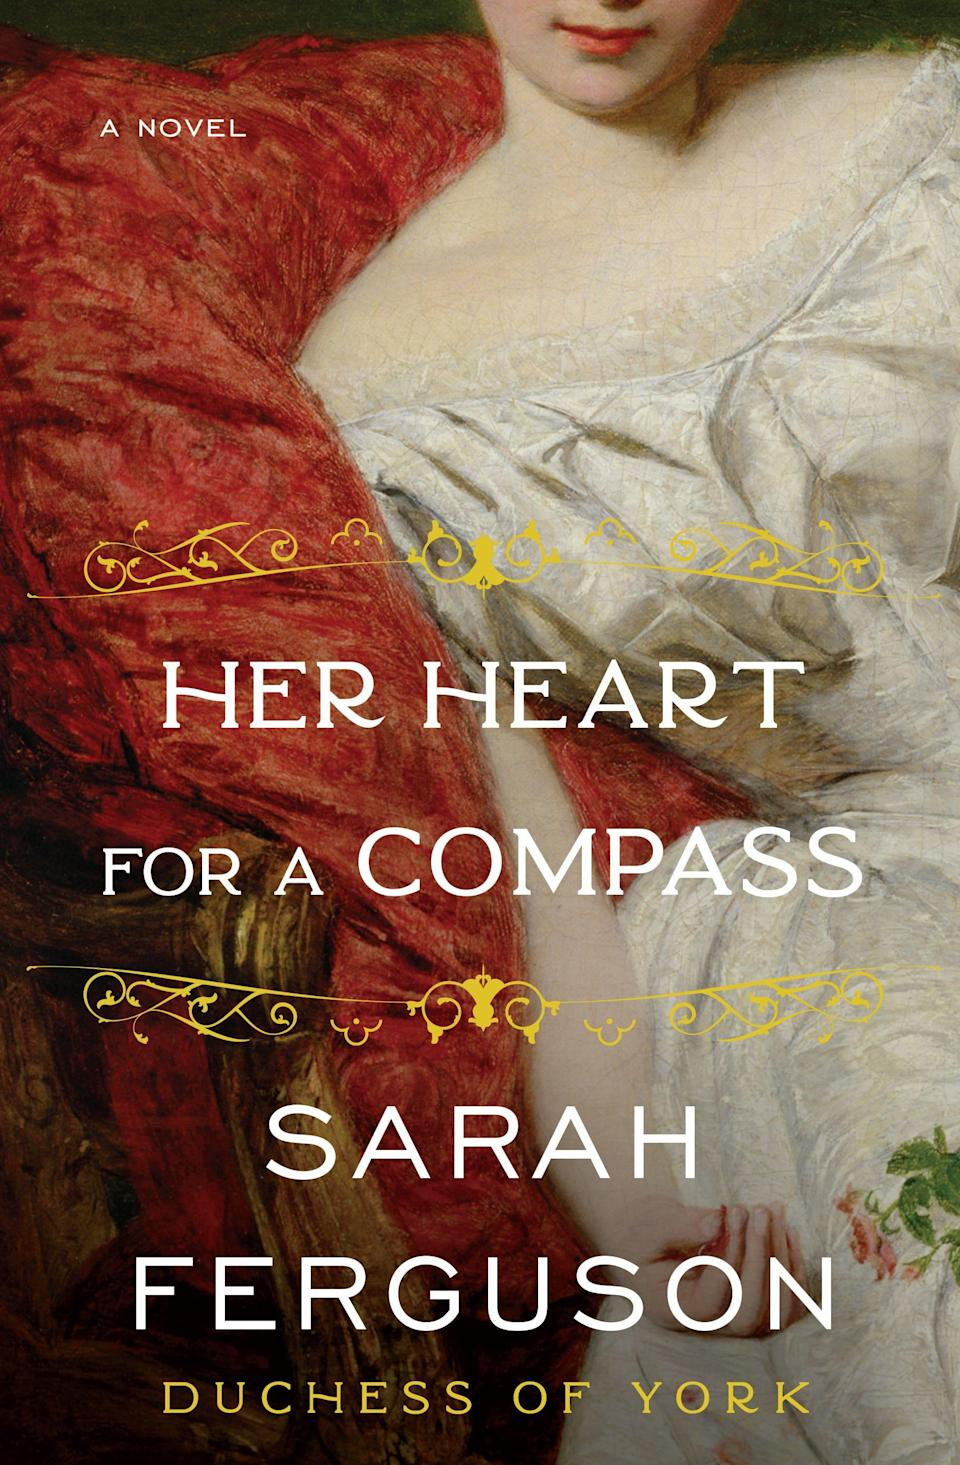 """""""Her Heart for a Compass,"""" by Sarah Ferguson, Duchess of York, follows noblewoman Lady Margaret Montagu Scott as she fights for independence in restrictive Victorian England."""